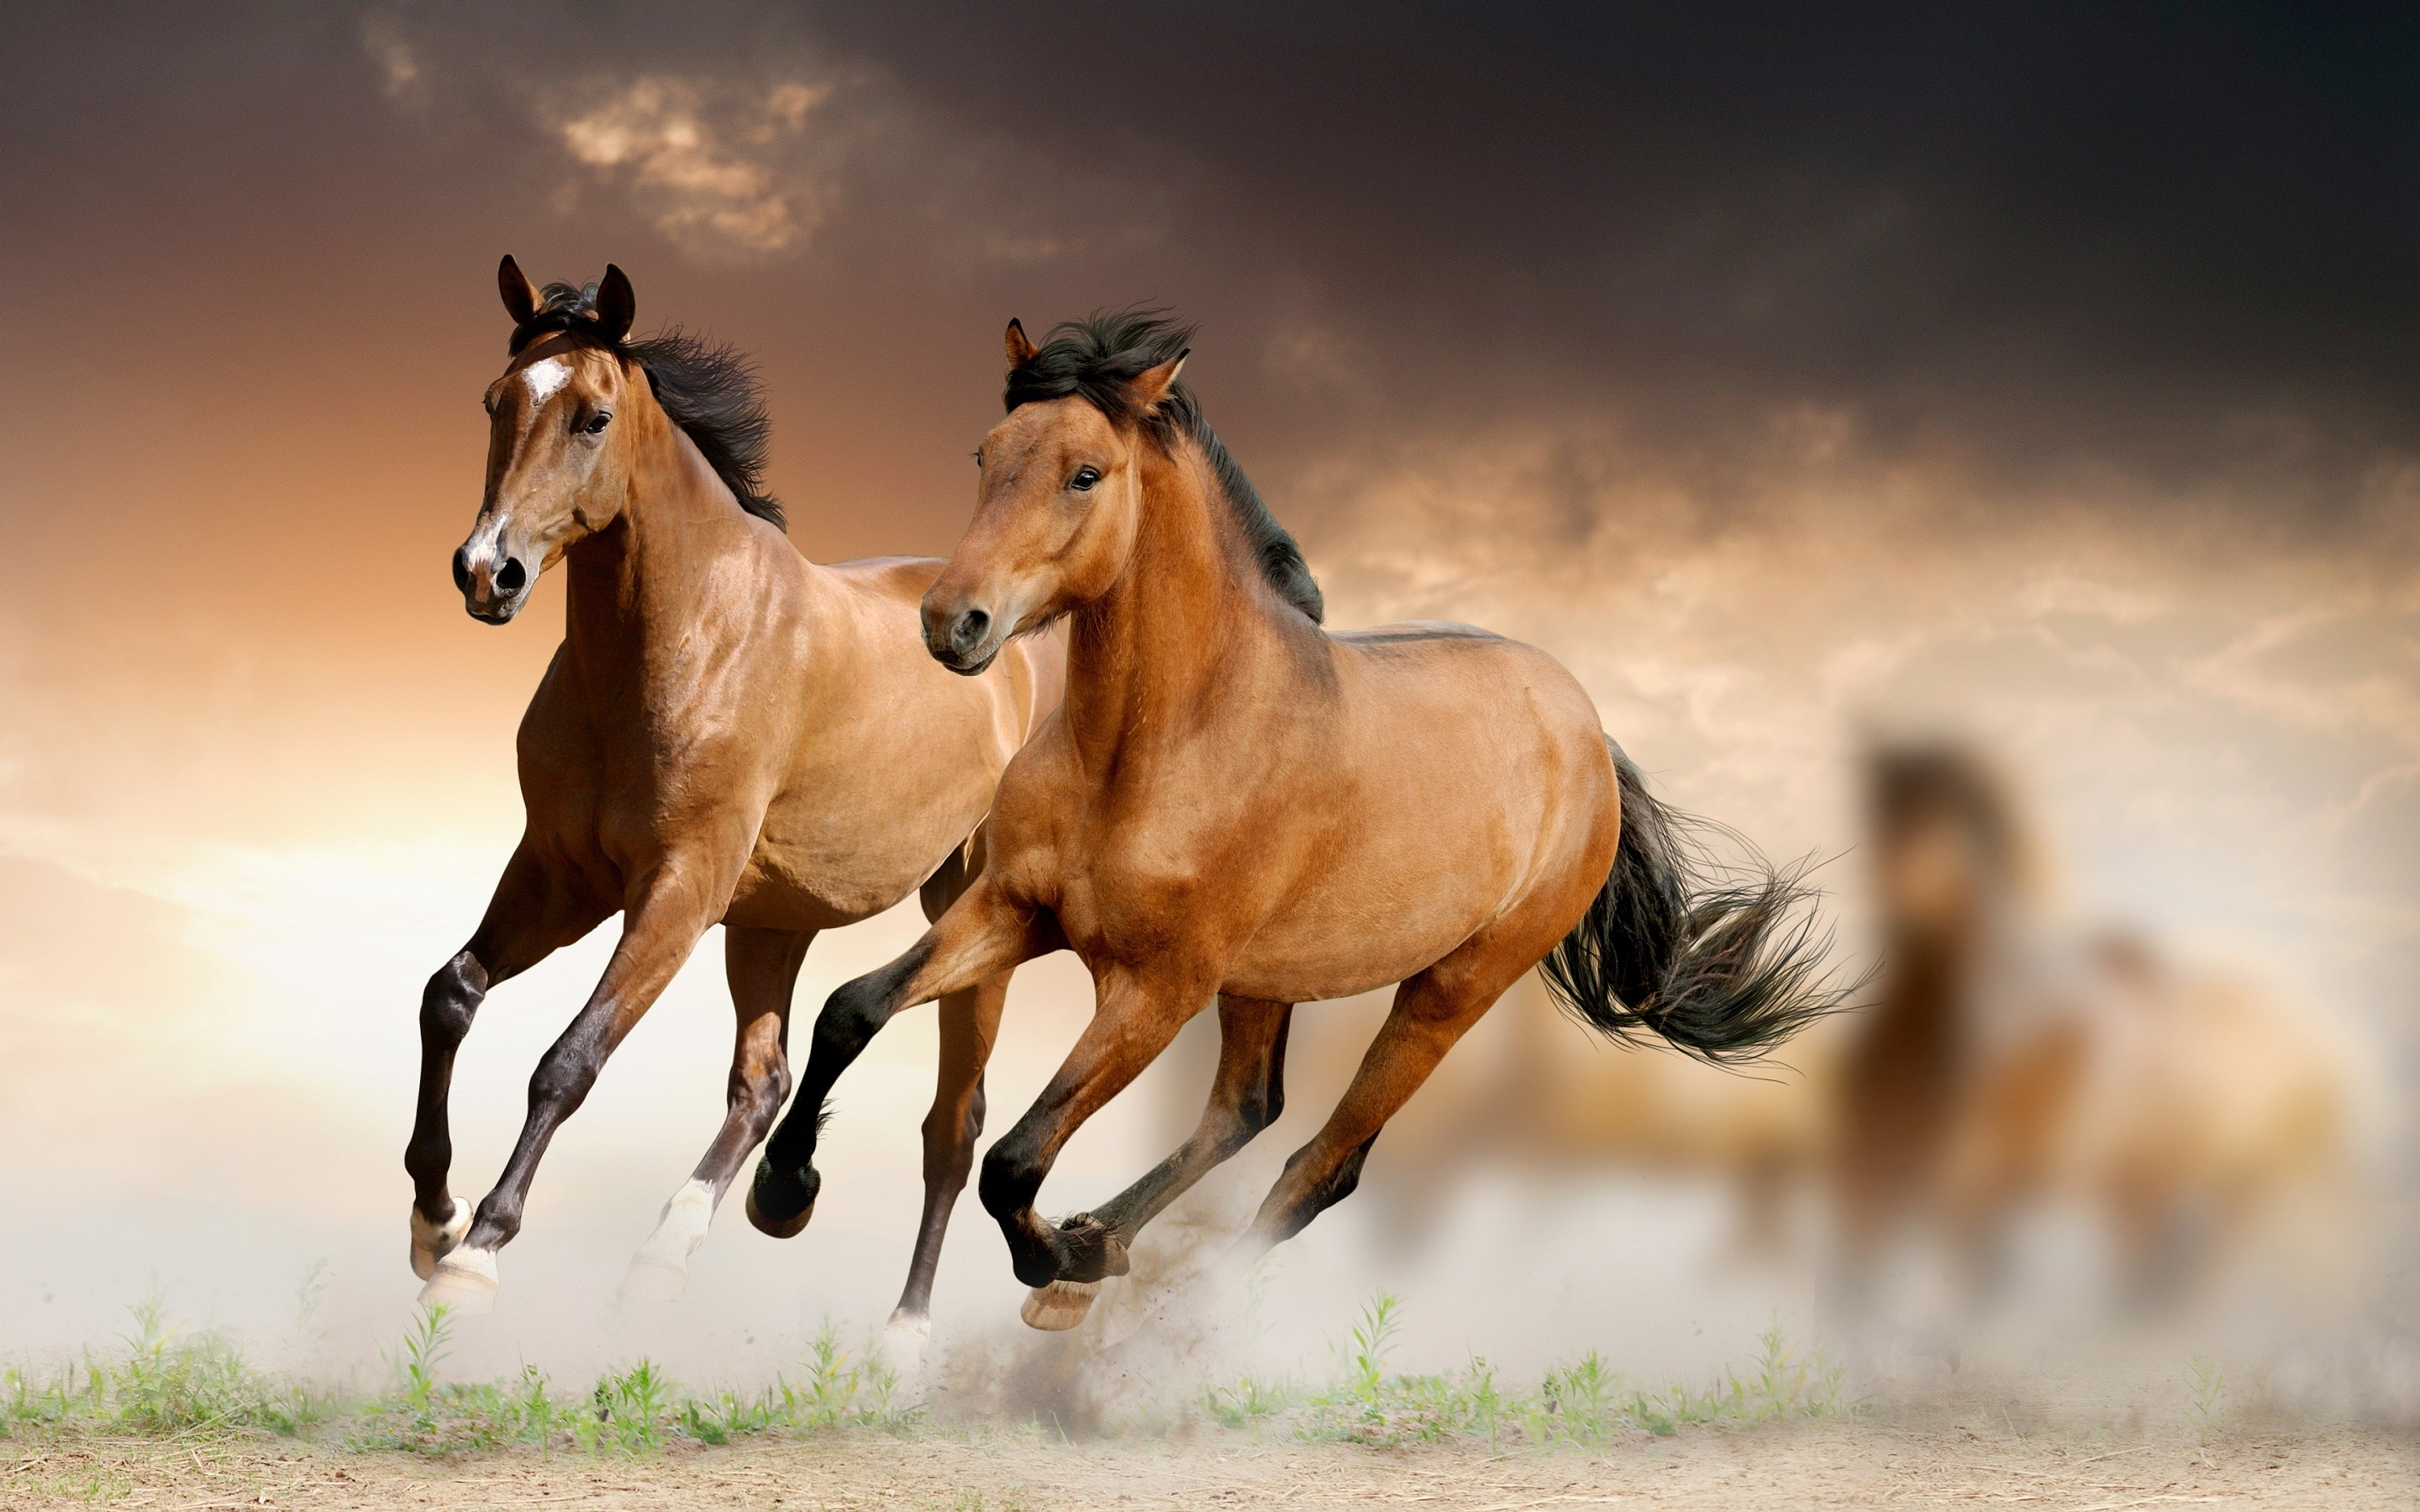 Wallpaper Horses 71 Pictures